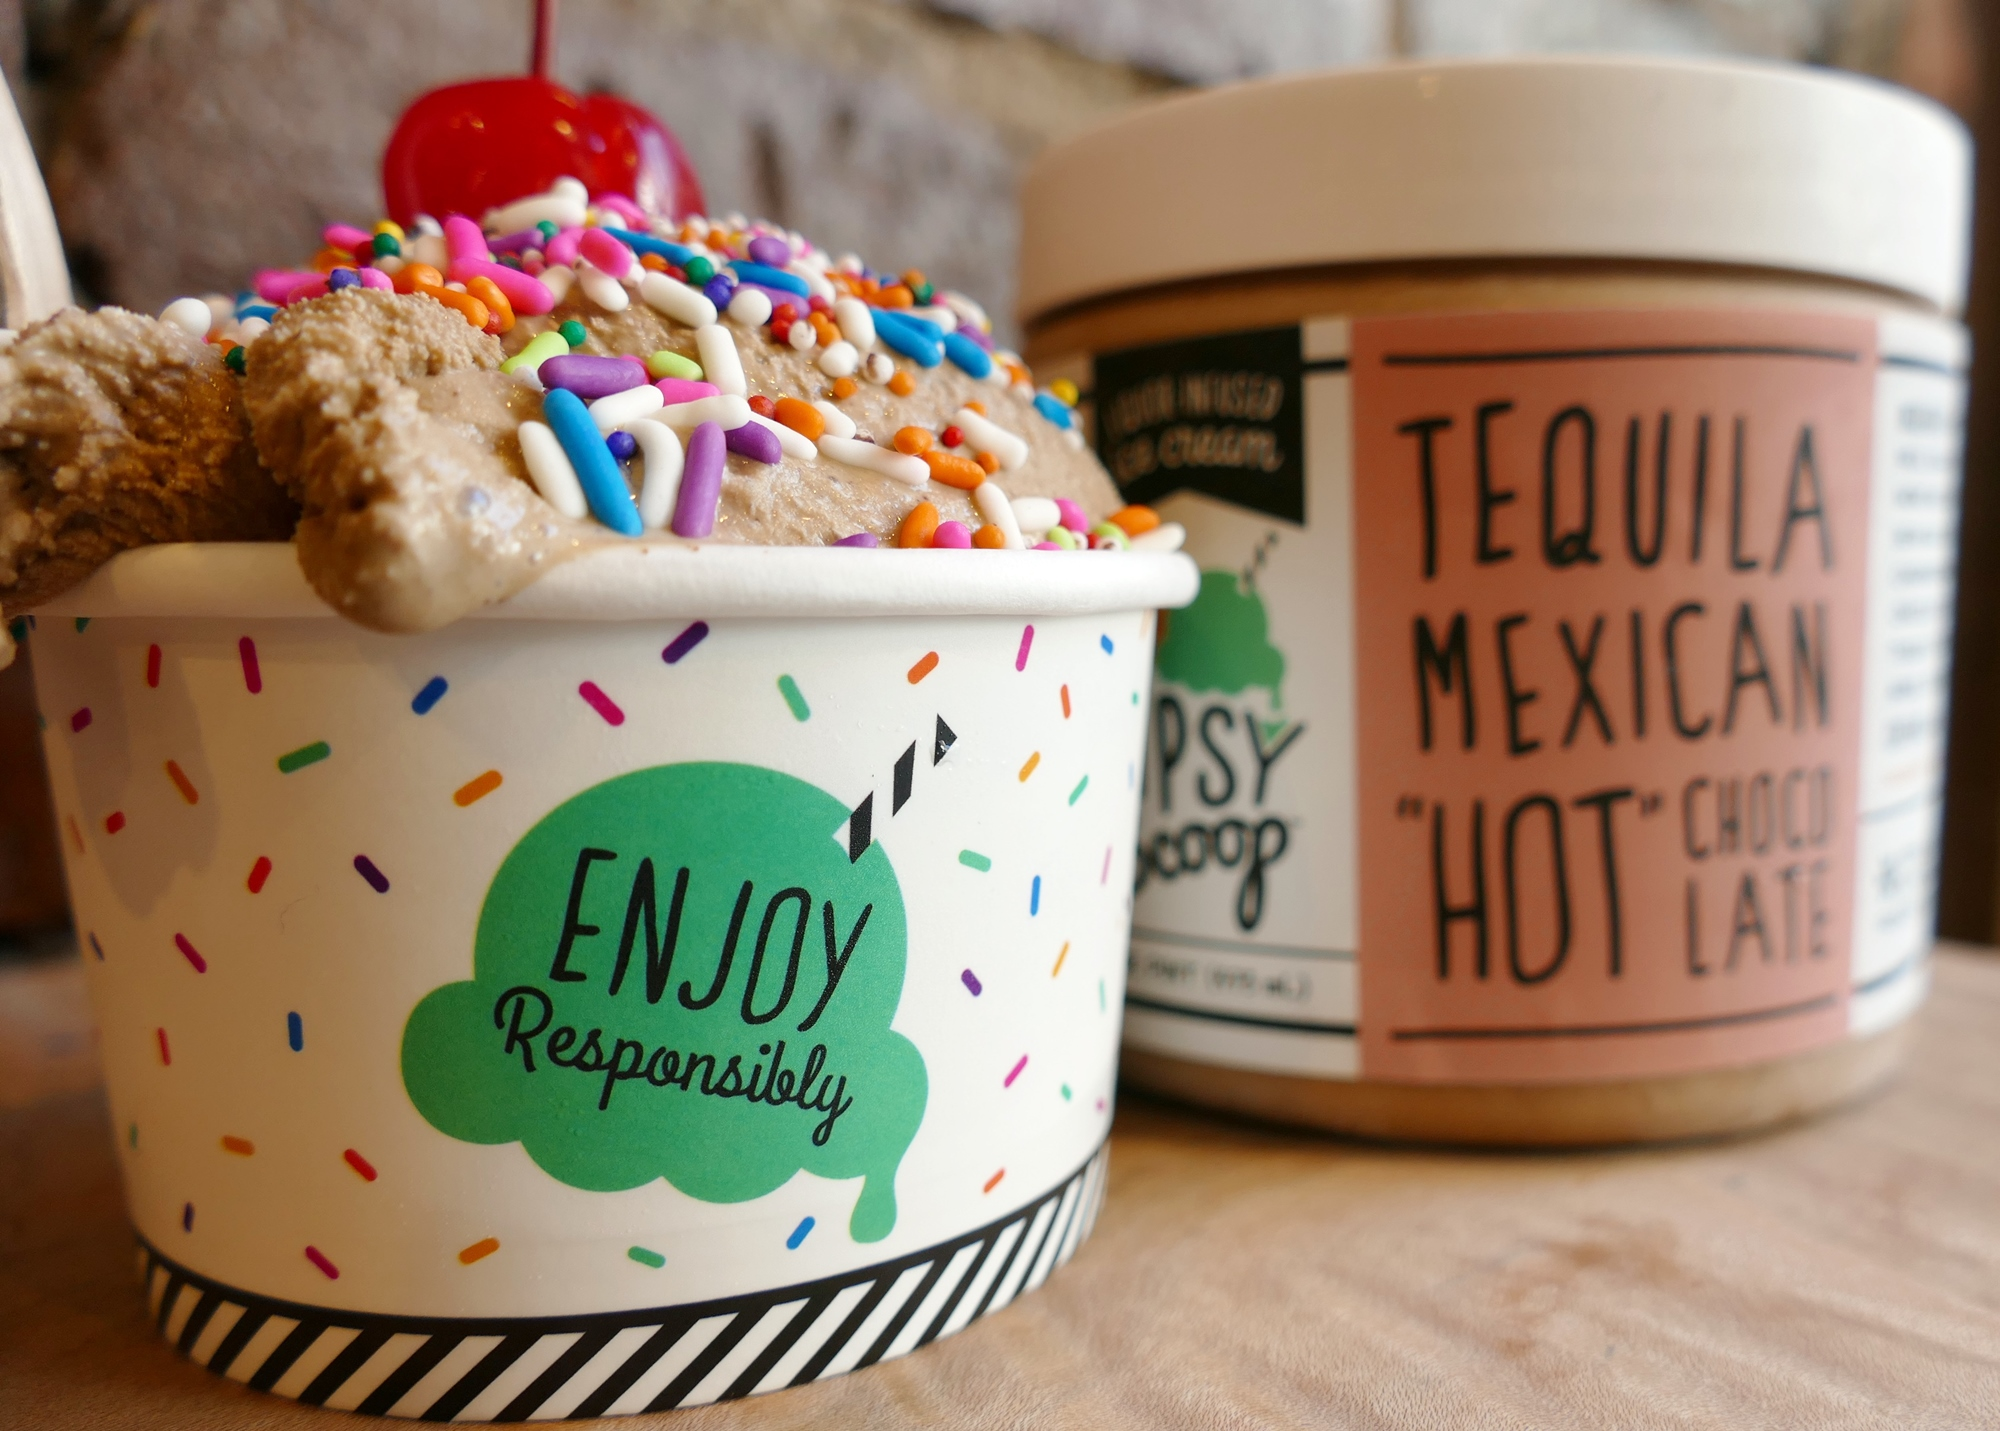 Get Free Patrón Ice Cream on National Tequila Day